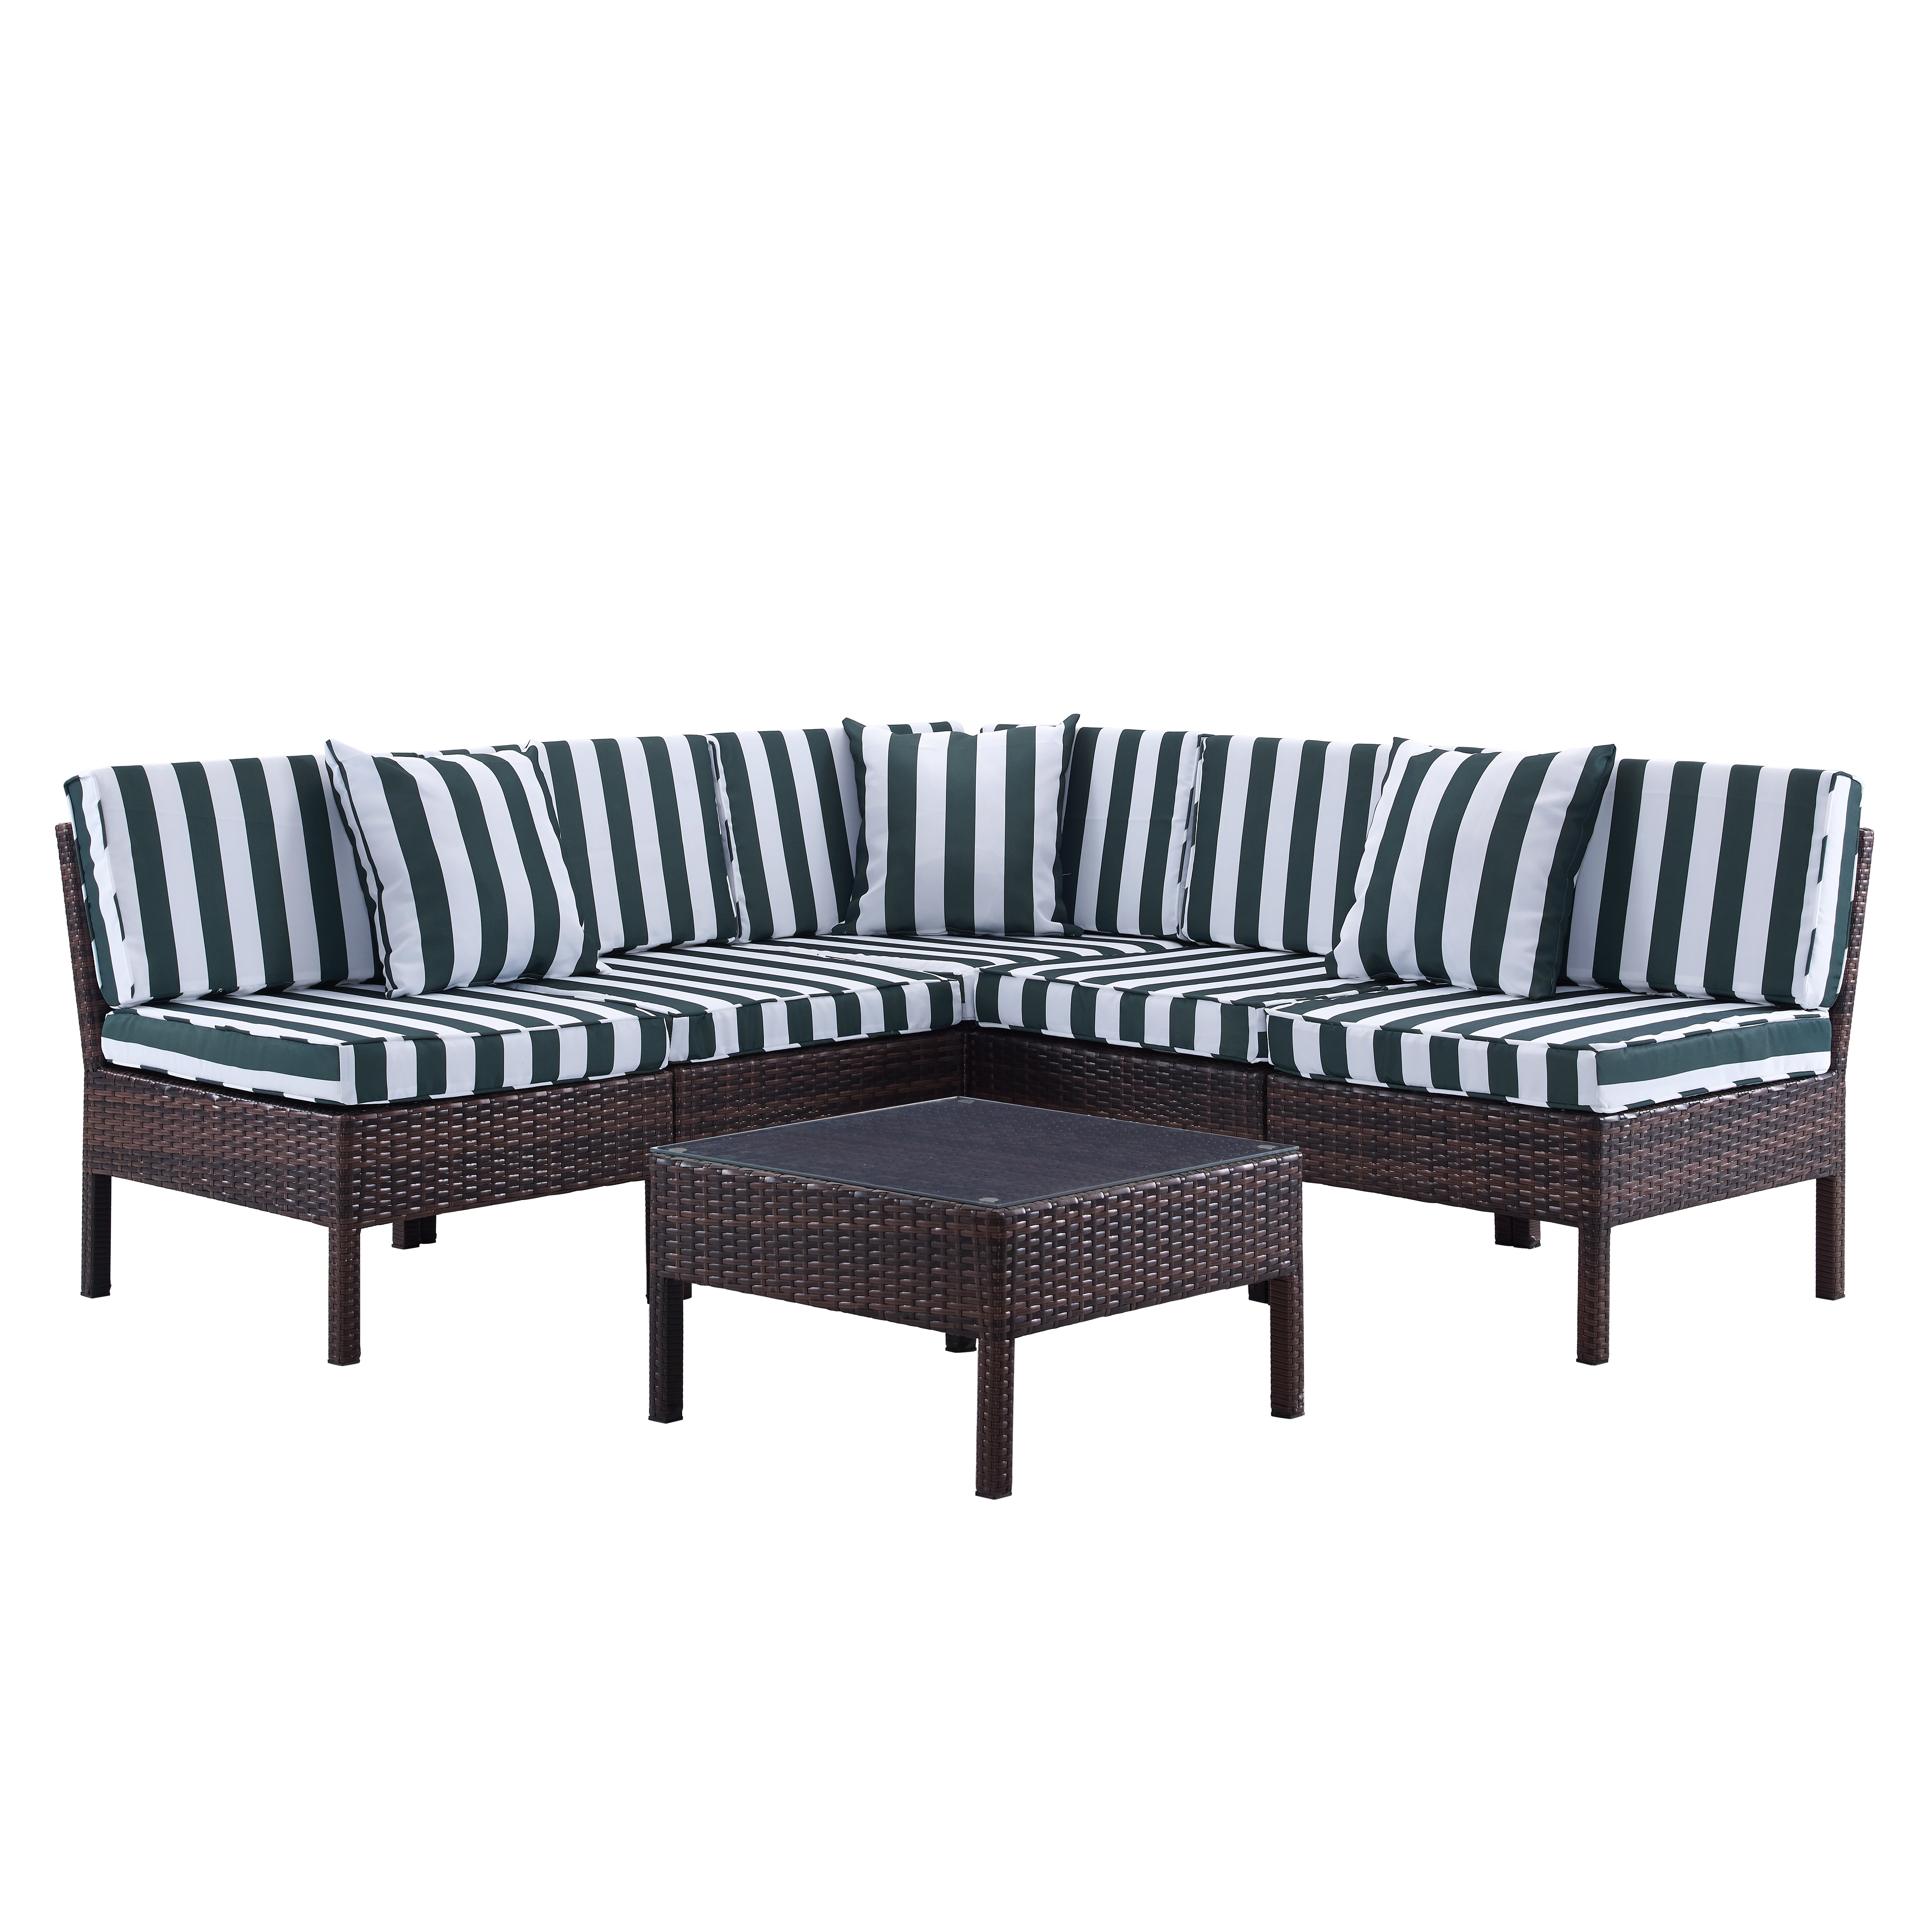 Breakwater Bay Monticello 6 Piece Sectional Seating Group  : Naples6PieceDeepSeatingGroupwithCushion from www.wayfair.com size 5833 x 5833 jpeg 2486kB